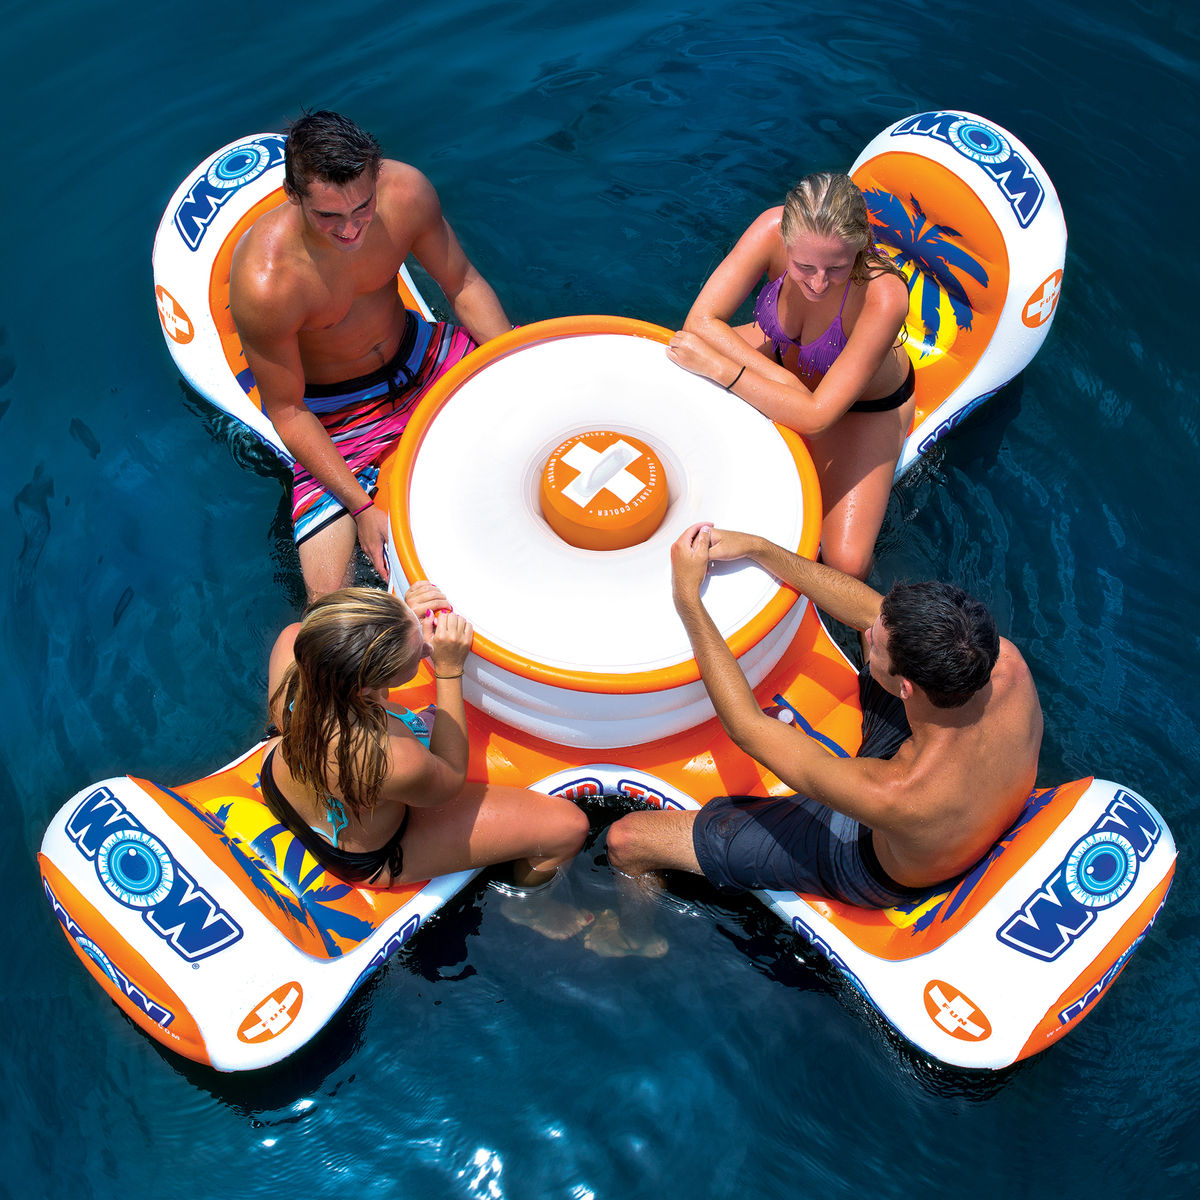 Floating Island Table: If you're looking to take care of business, but still have a good time why not spring for this inflatable. What will you do while seated at this four seater in the middle of the pool? Well really, the options are endless. This floatie is on sale at Overton's right now for $139.98. (Photo: Courtesy Overtons)